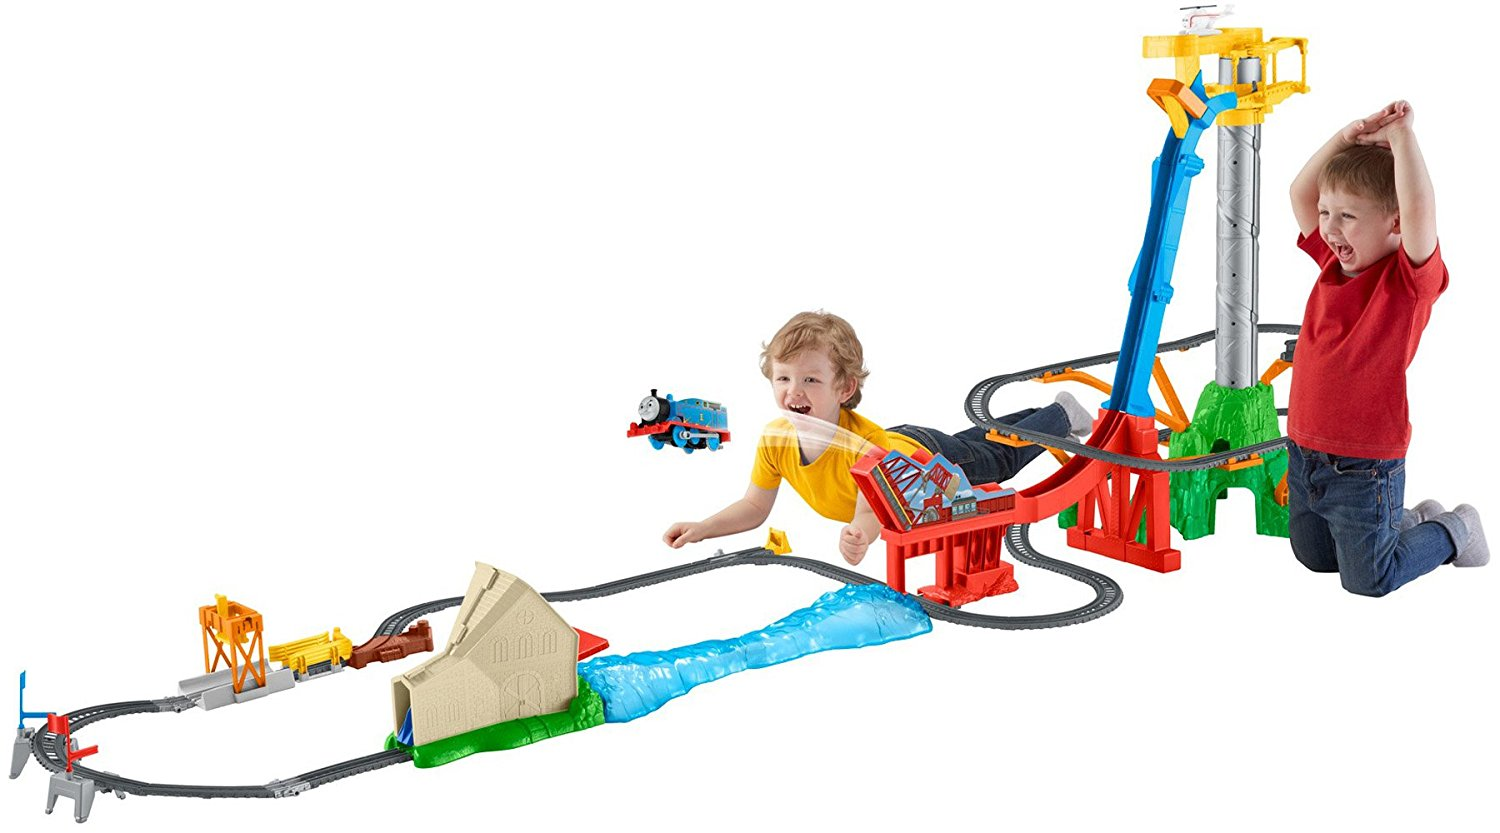 c2f0bd8ba55dc8 Fisher-Price Thomas & Friends TrackMaster Thomas' Sky-High Bridge Jump Only  $29.97